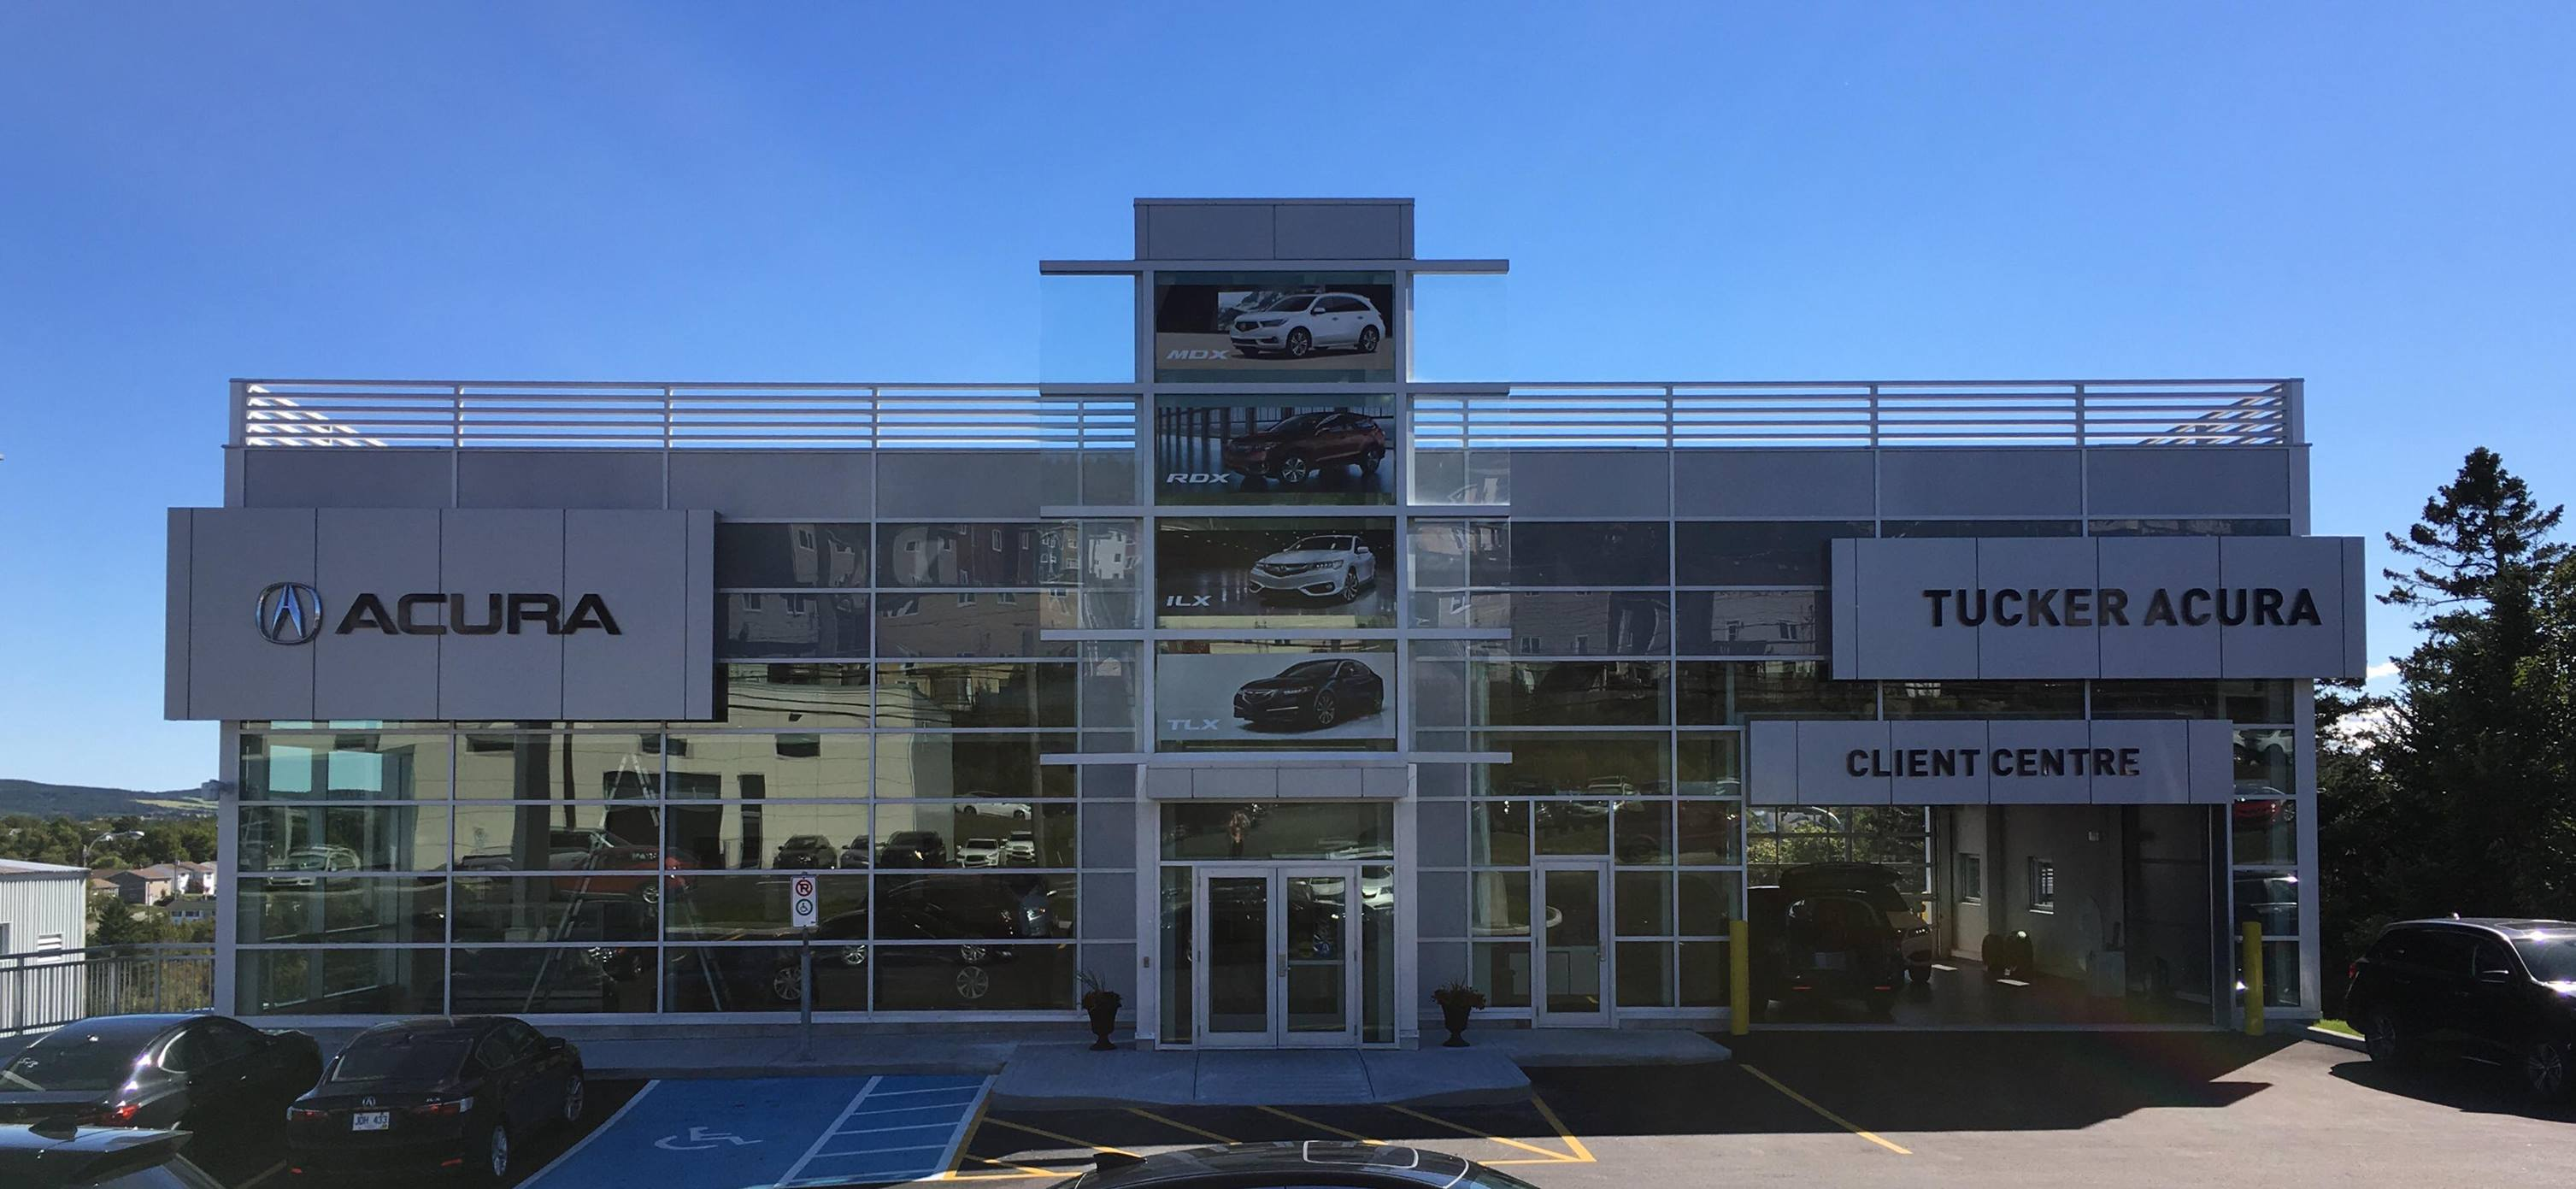 htm asc with specials advisors acura near any advisor service andover ma accelerated schedule and dealer center